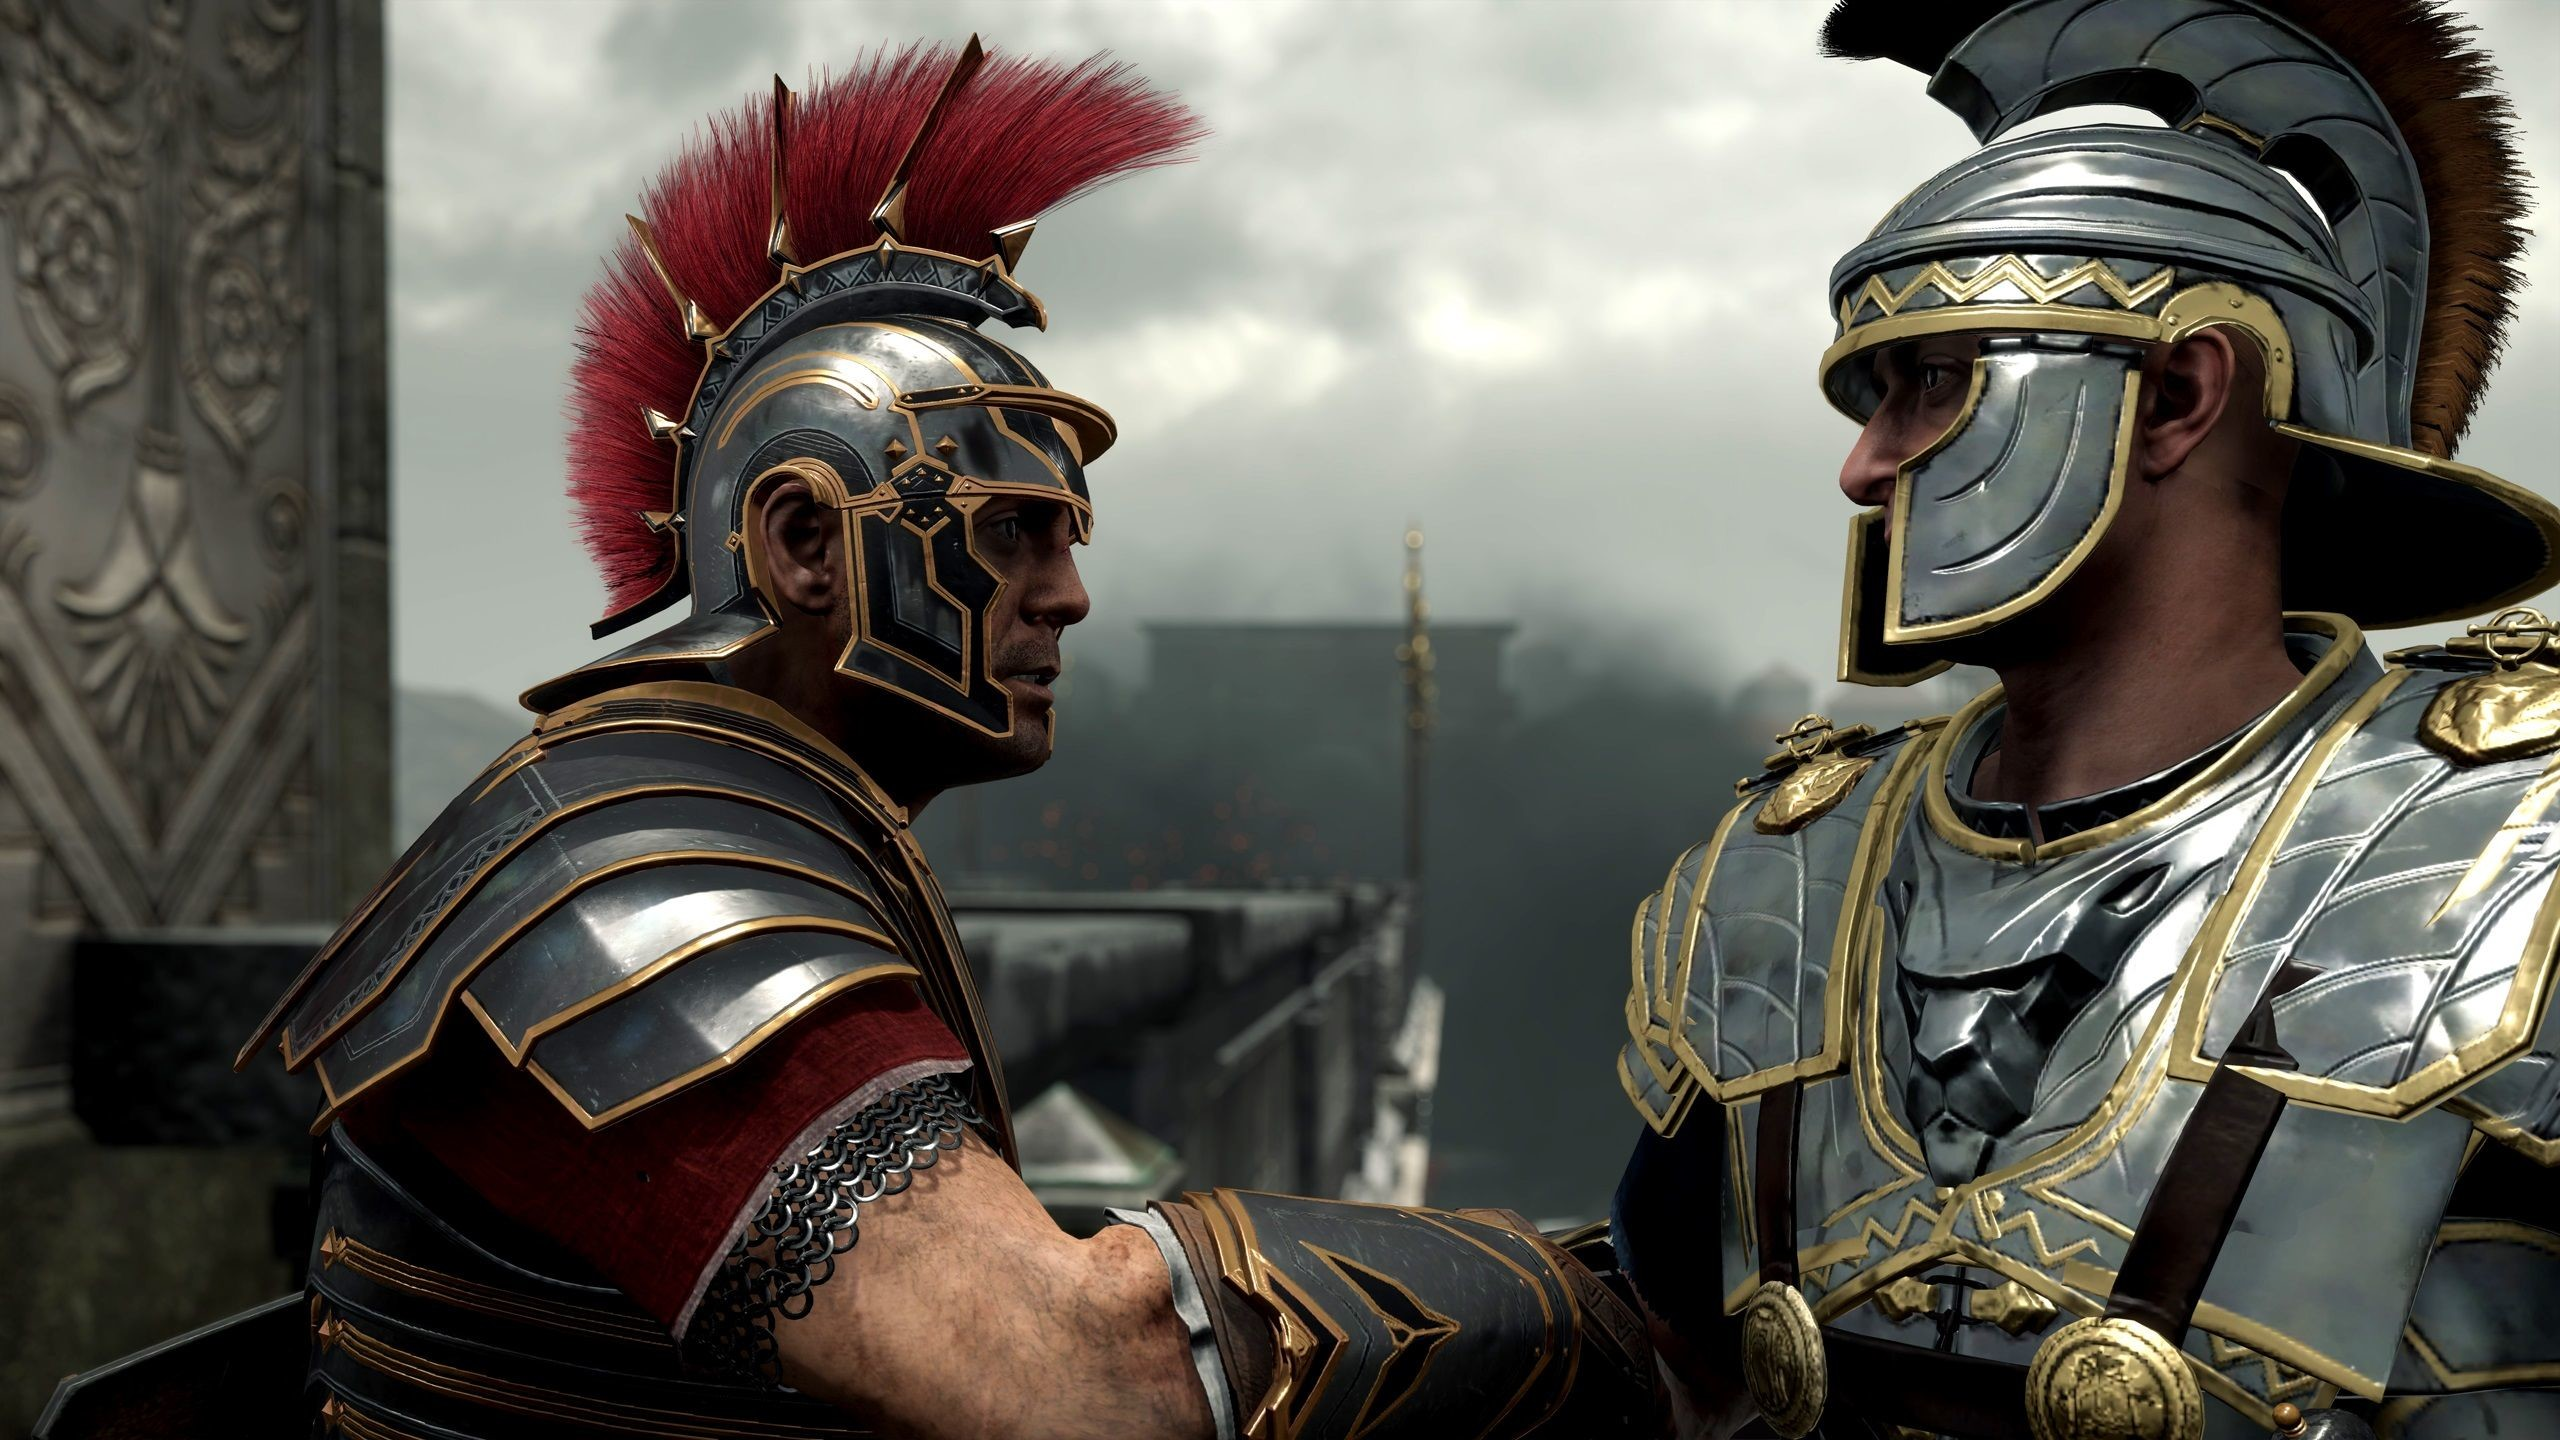 Res: 2560x1440, gladiator roman wallpaper - Buscar con Google